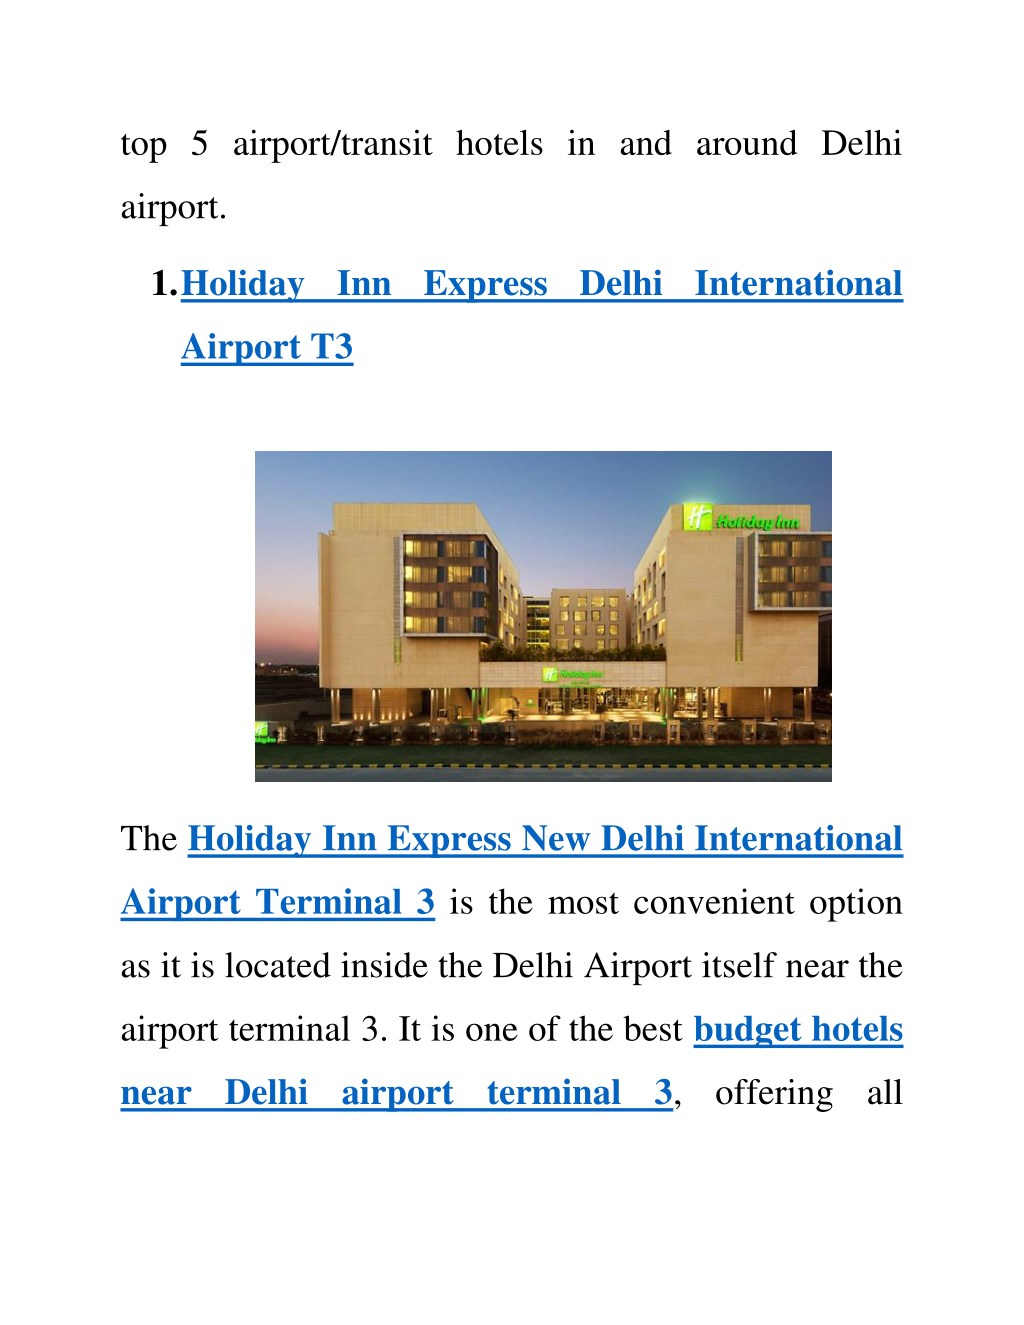 Ppt Top 5 Hotels In Or Around Delhi Airport Powerpoint